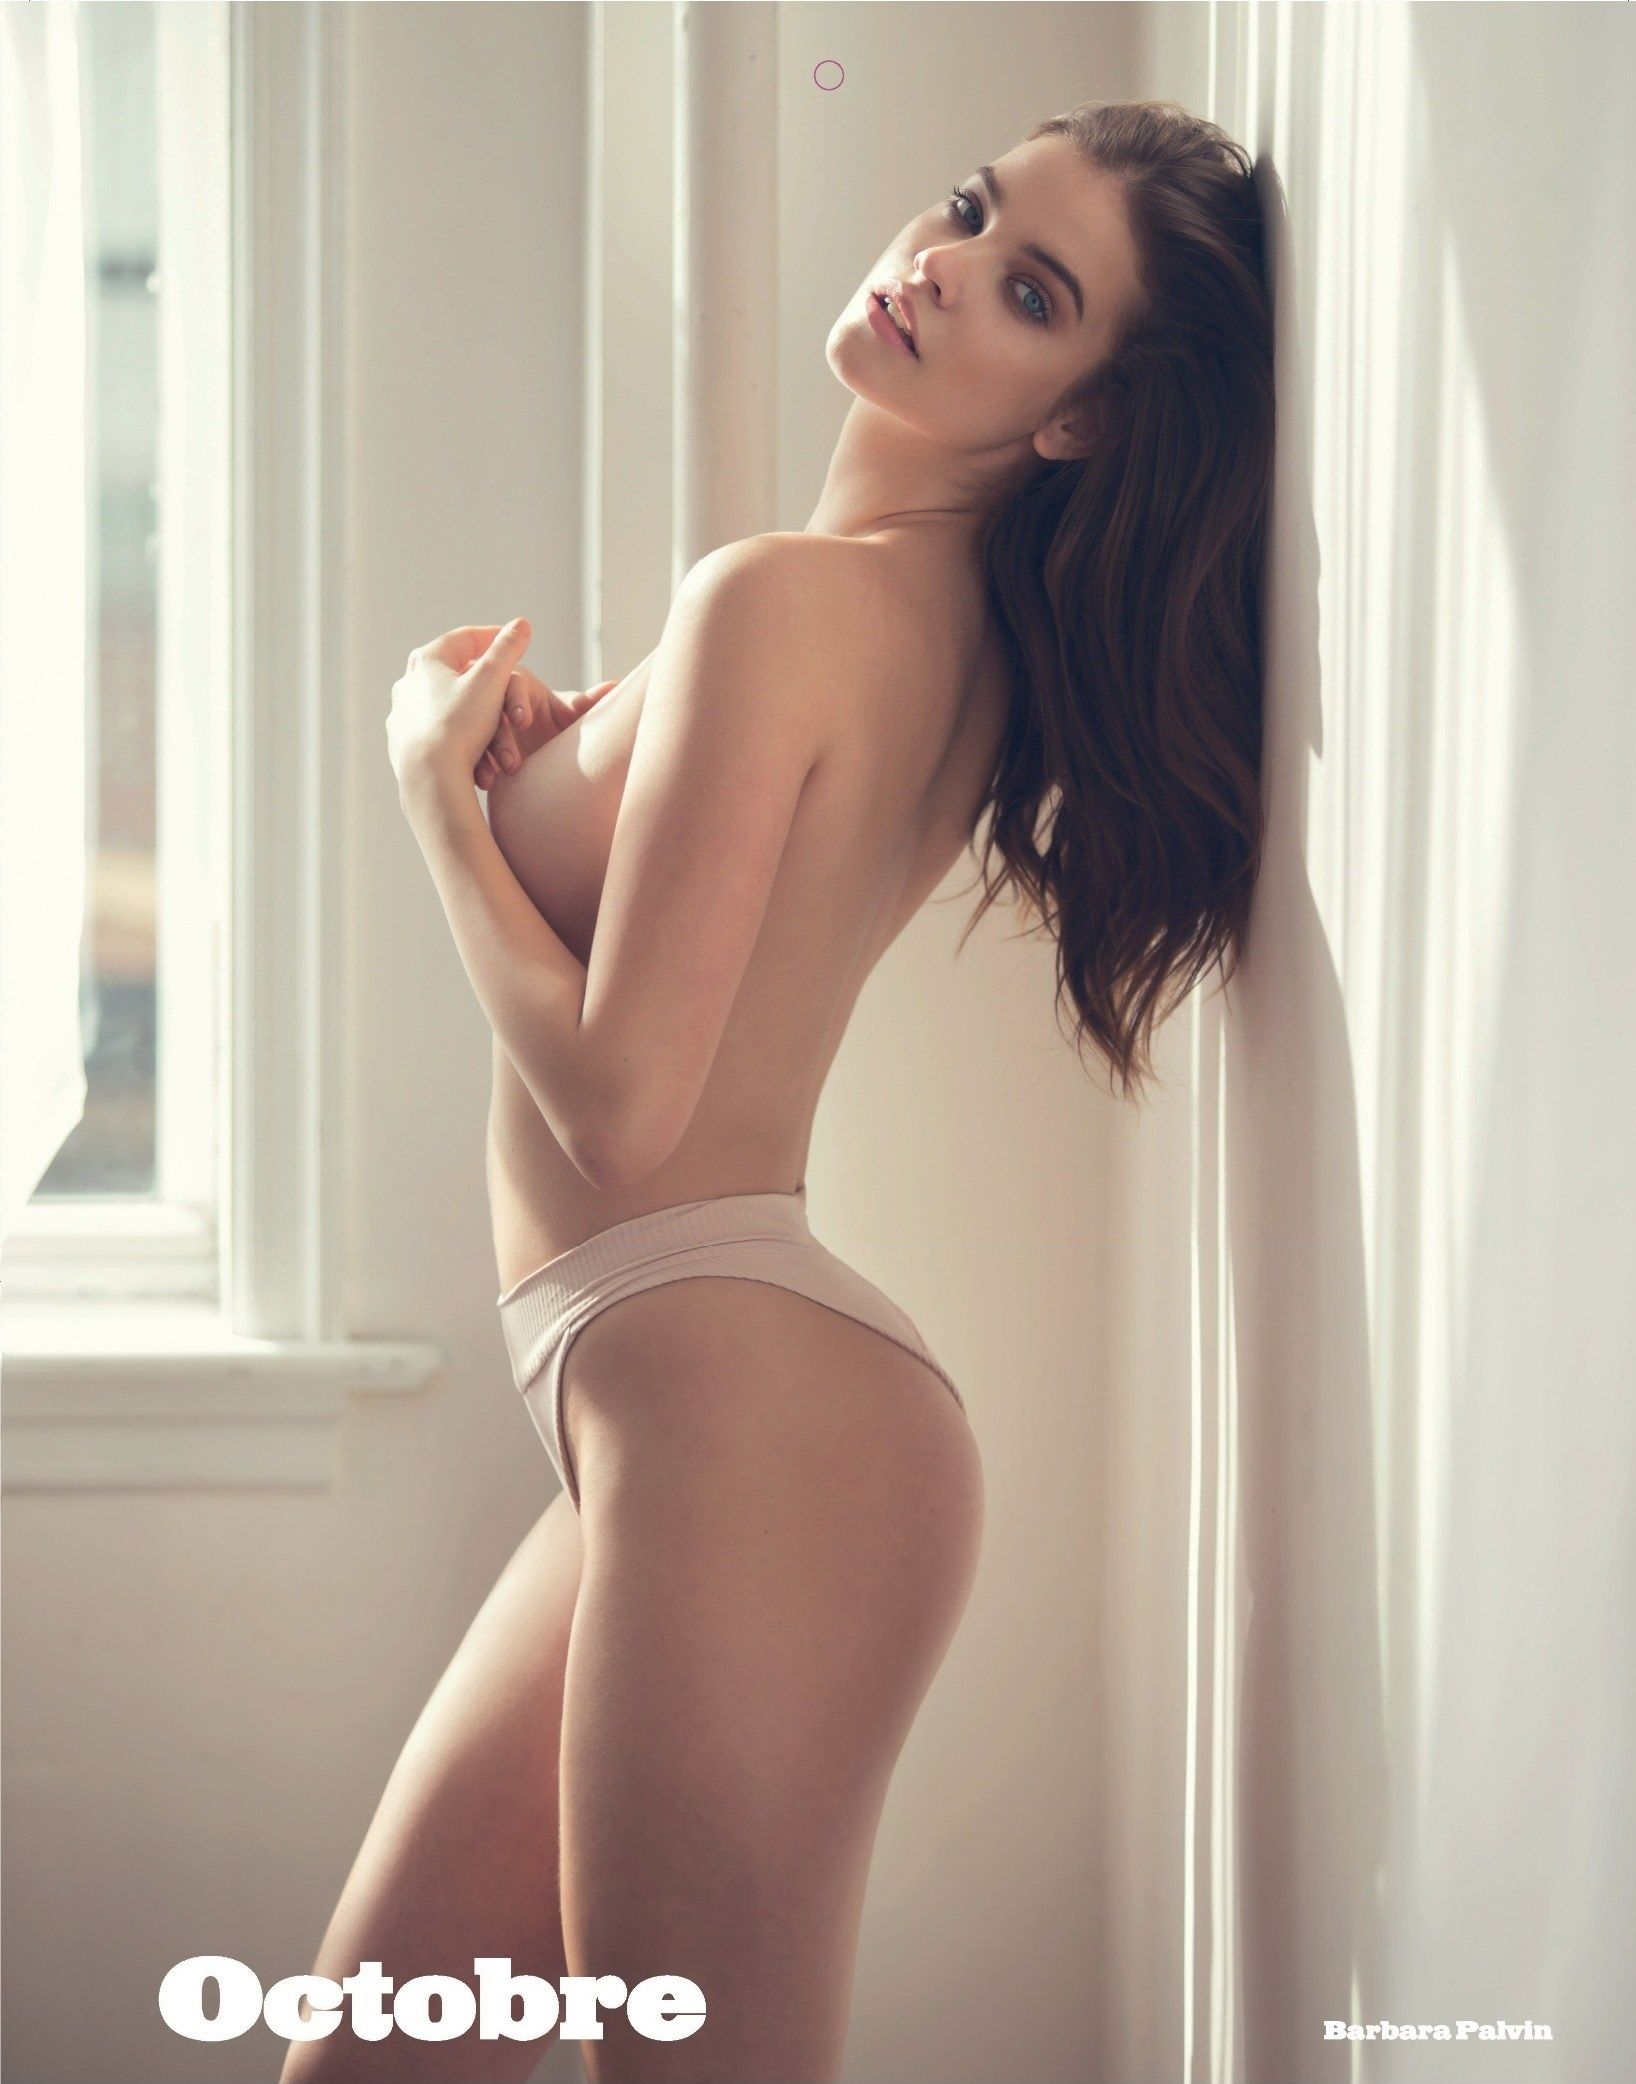 Barbara Palvin Topless Ph...